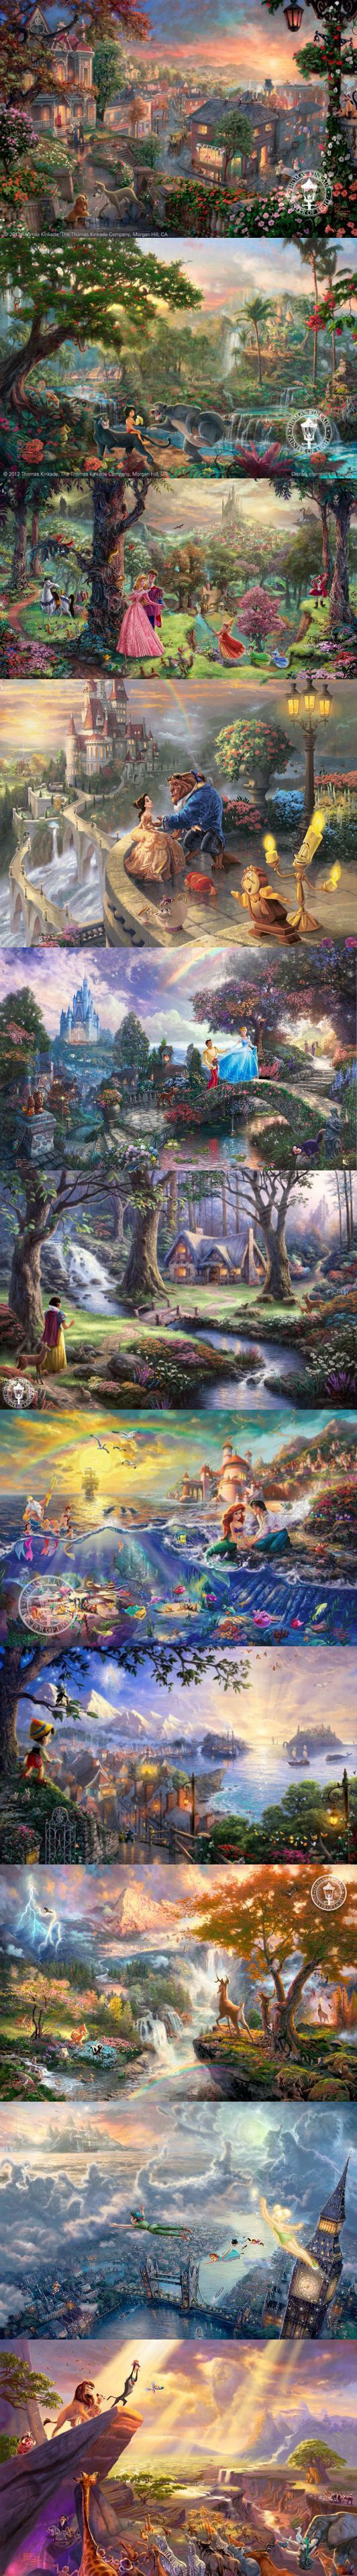 Disney - Thomas Kinkade Two words describe this. Amazing and beautiful. I've always admired his work